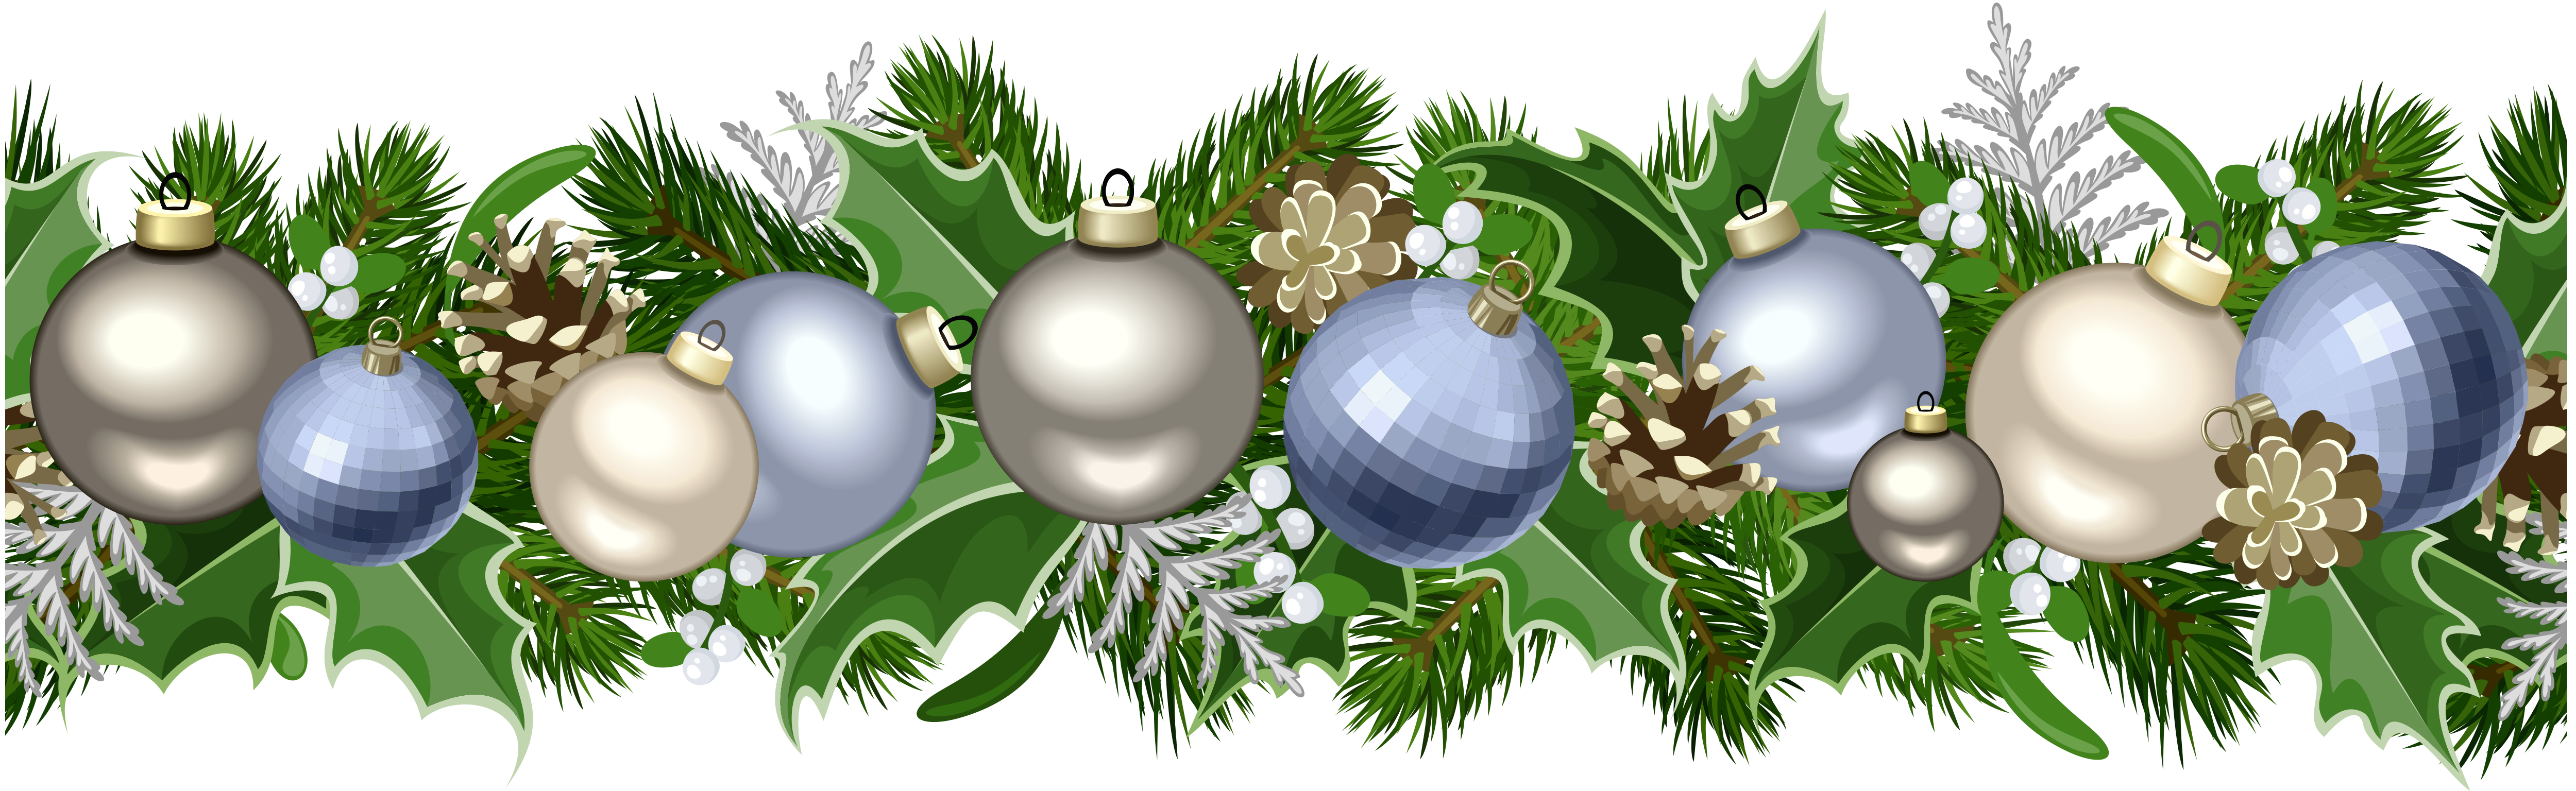 Christmas_Deco_Garland_PNG_Picture.png